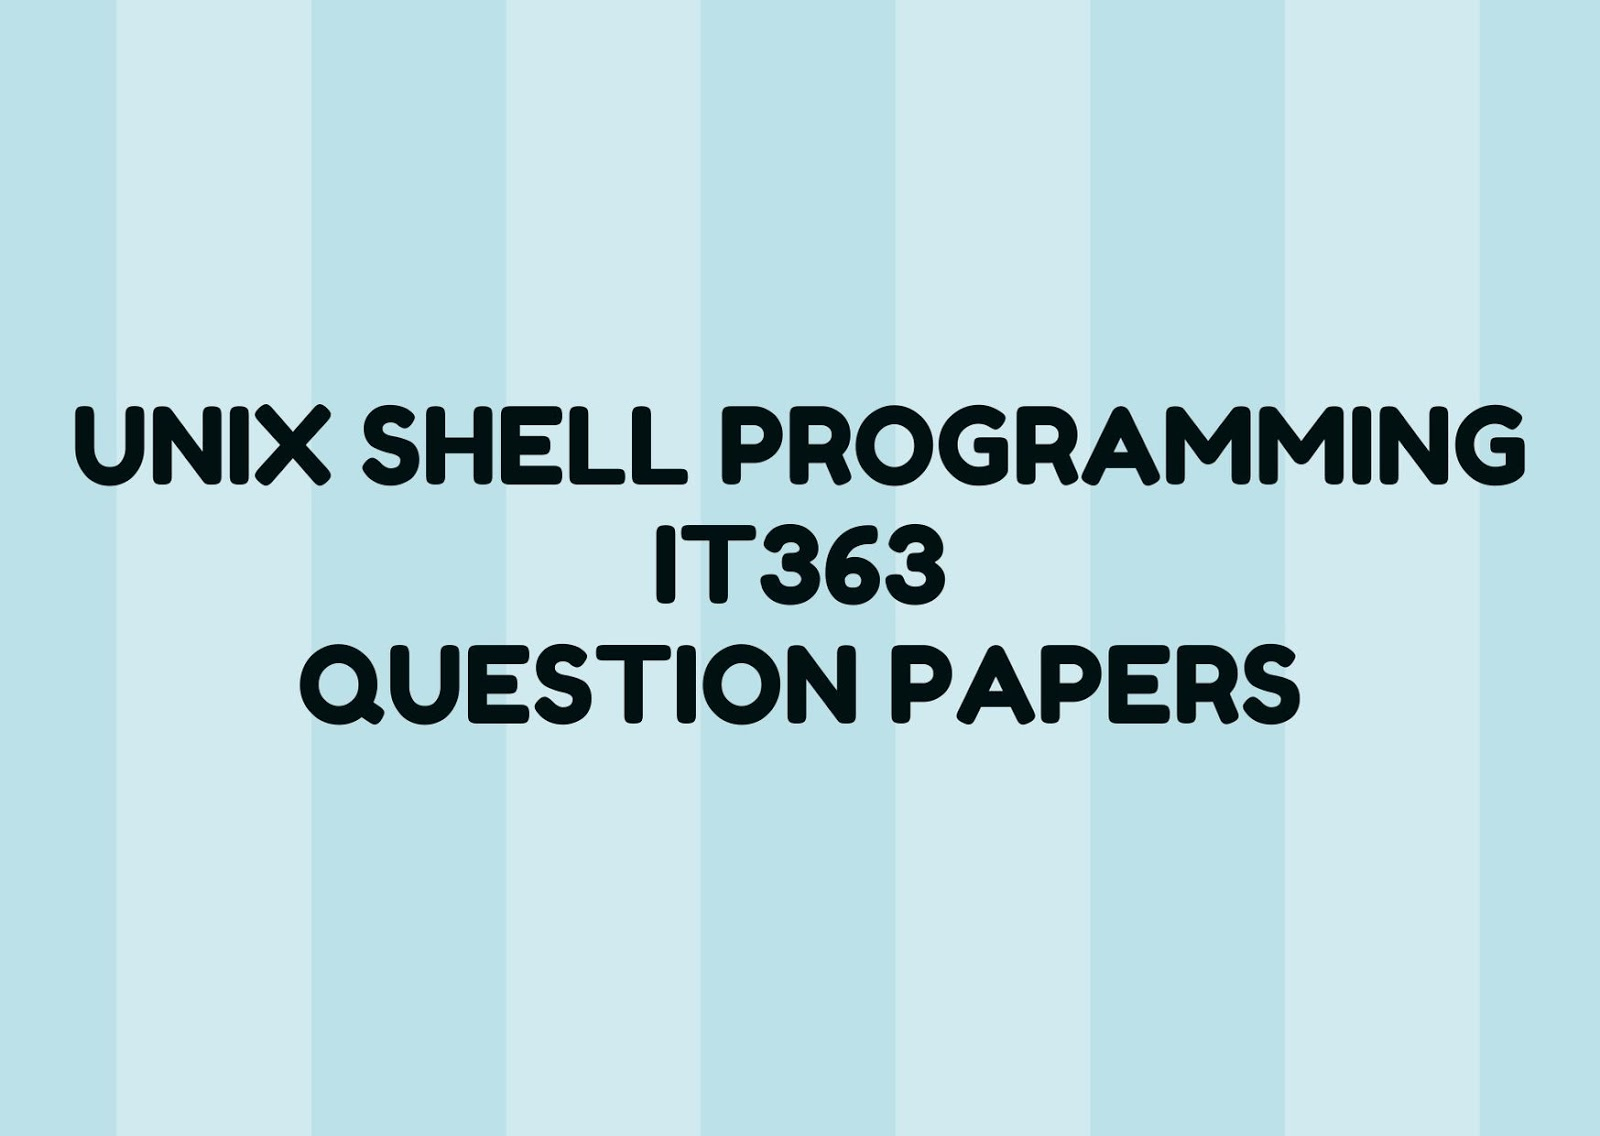 UNIX Shell Programming | IT363 | Question Papers (2015 batch)